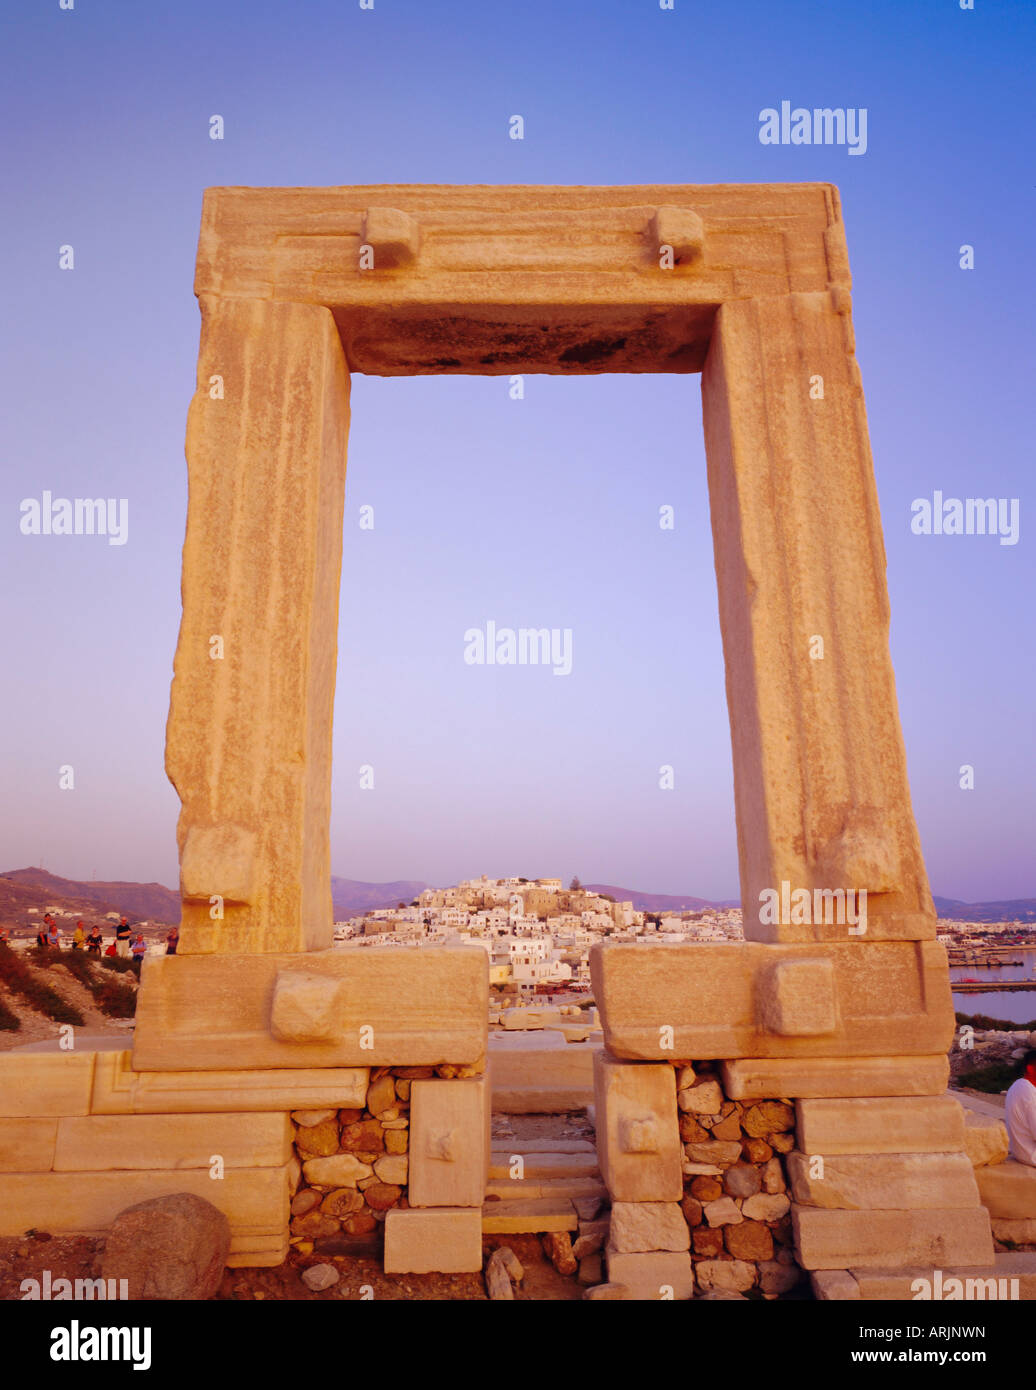 Temple of Apollo and Naxos, Naxos, Cyclades Islands, Greece, Europe - Stock Image